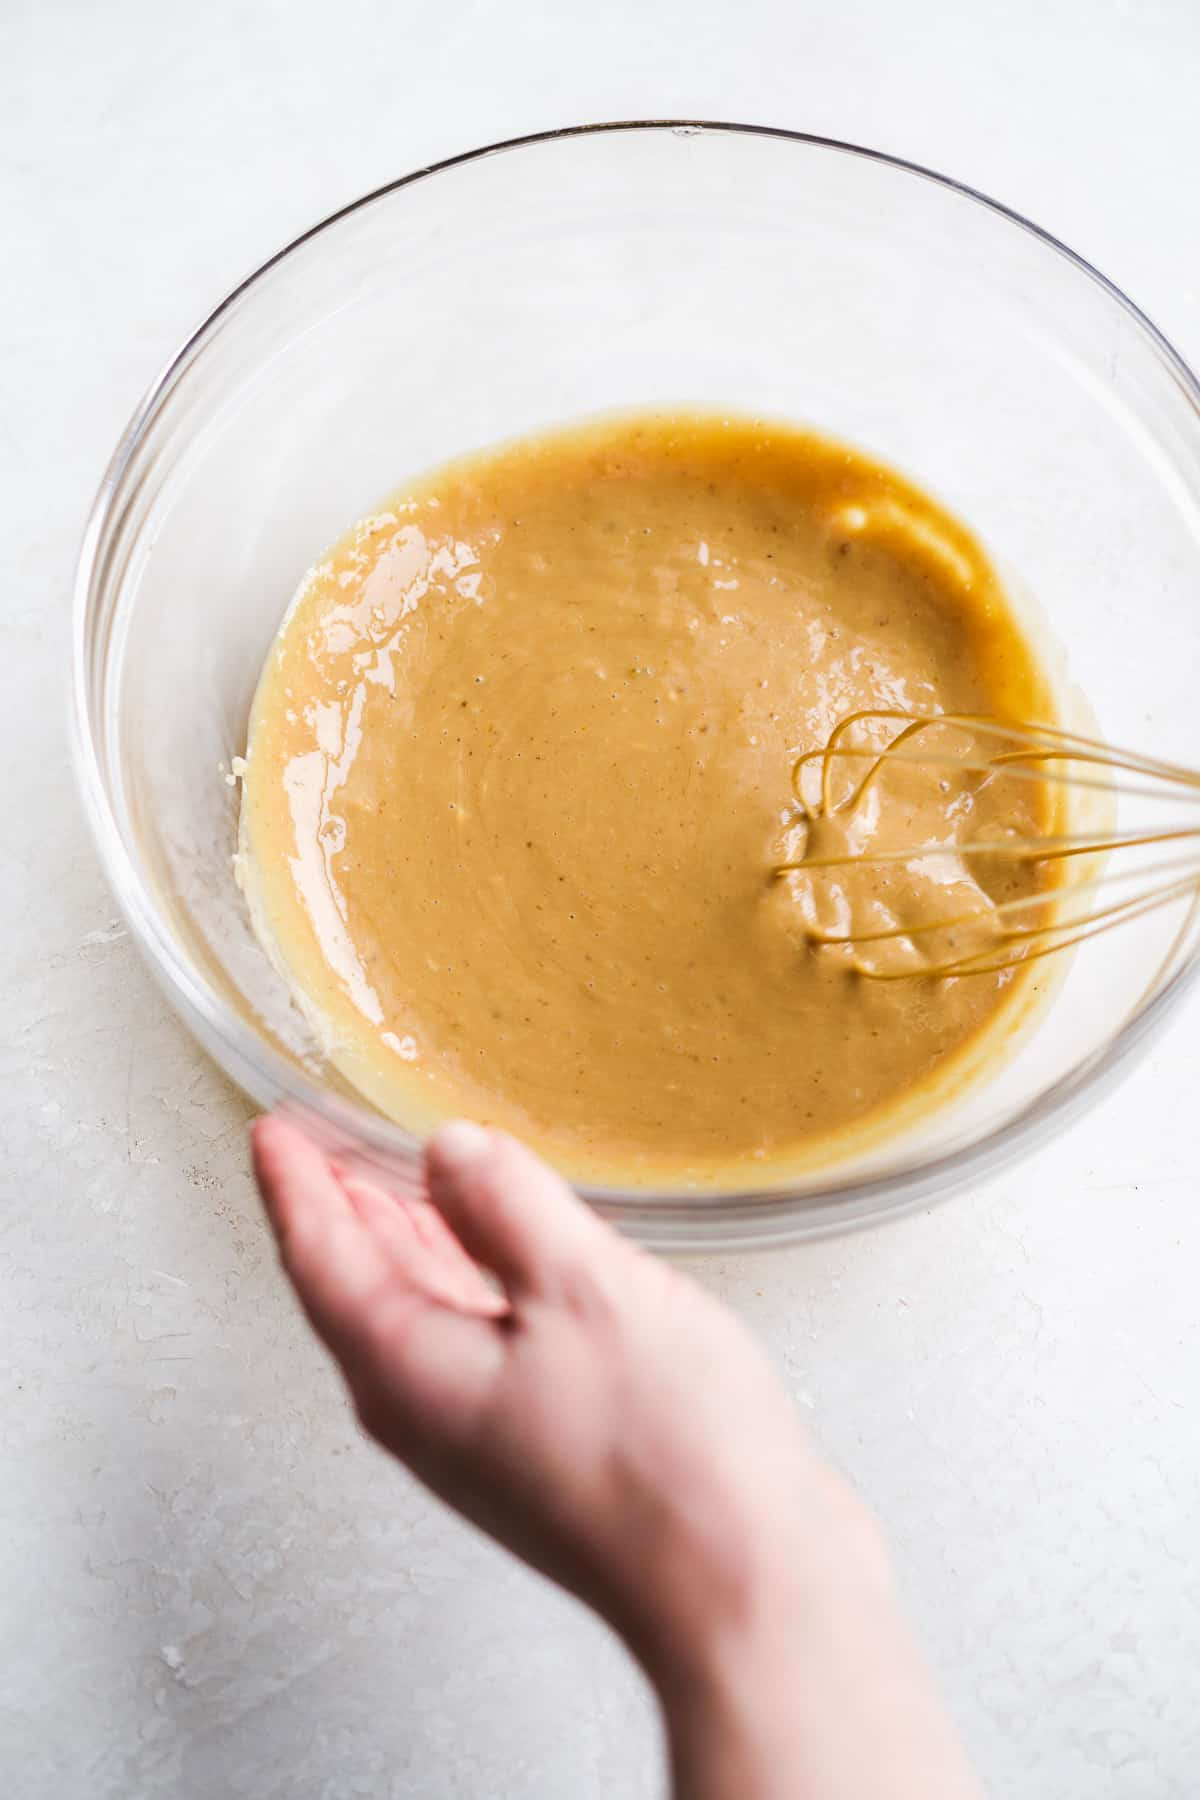 Glass bowl with hand whisking peanut butter colored mixture on white surface.